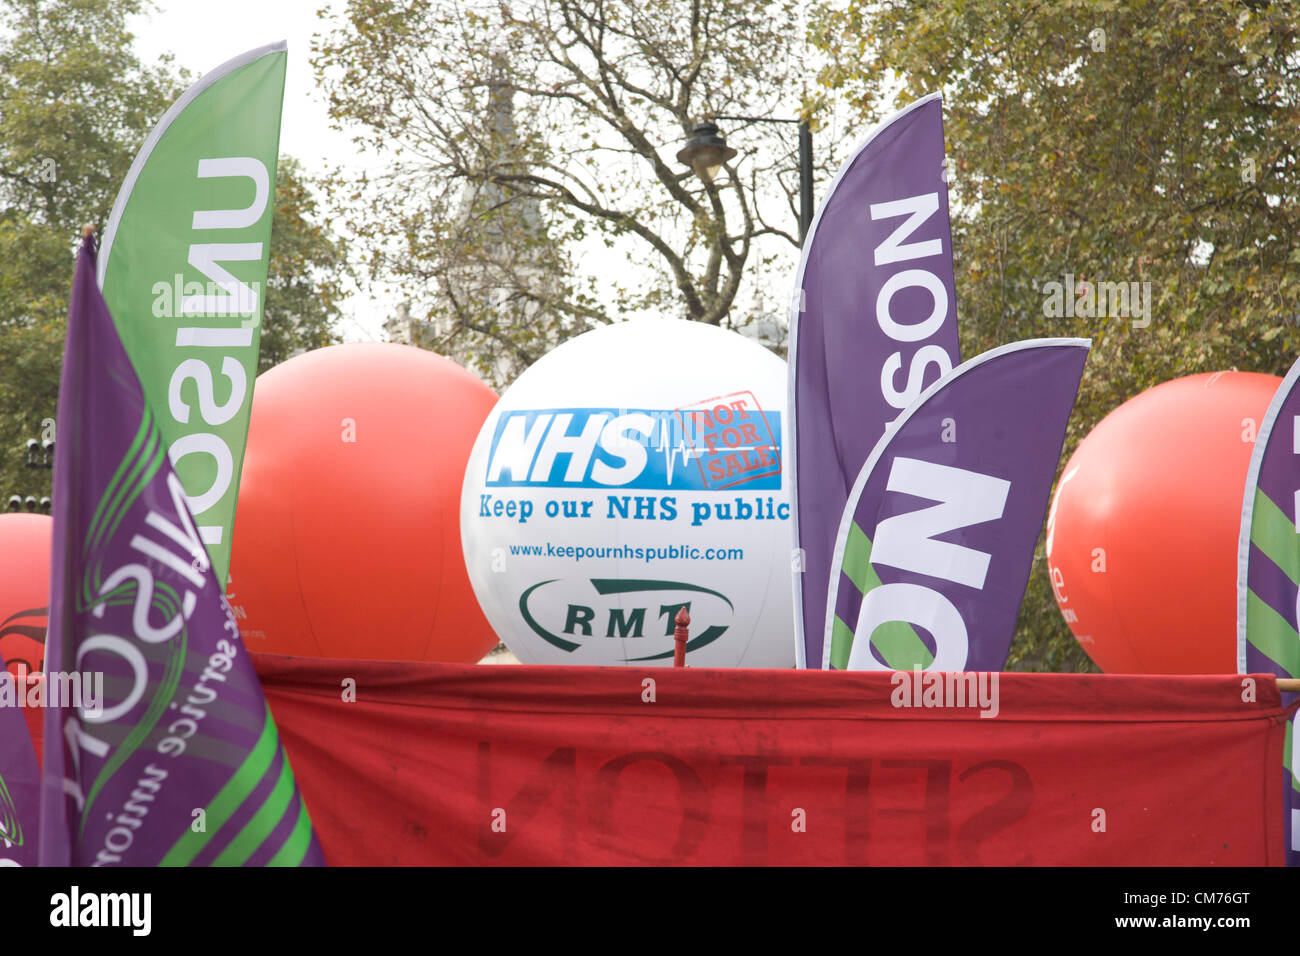 London, UK. 20th October 2012. London UK. Thousands of Union members and campaigners march against government austerity - Stock Image